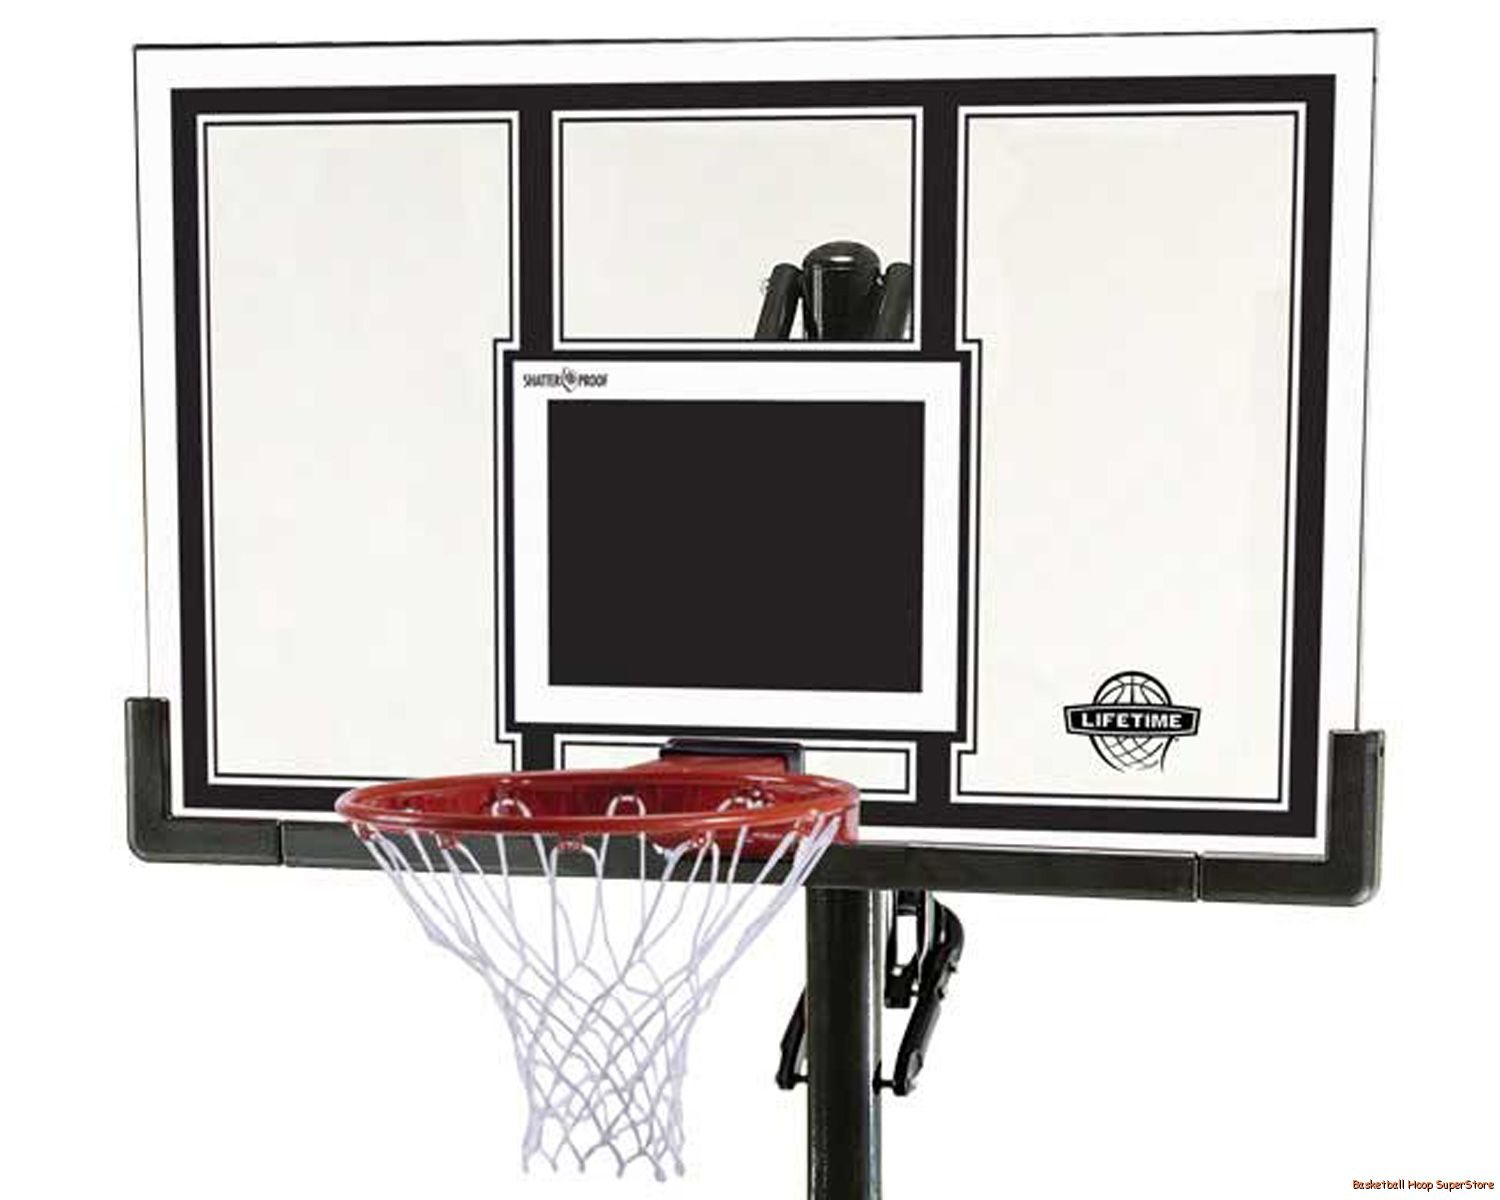 Lifetime 71525 In-Ground Basketball System with 54-Inch Shatter Guard Backboard